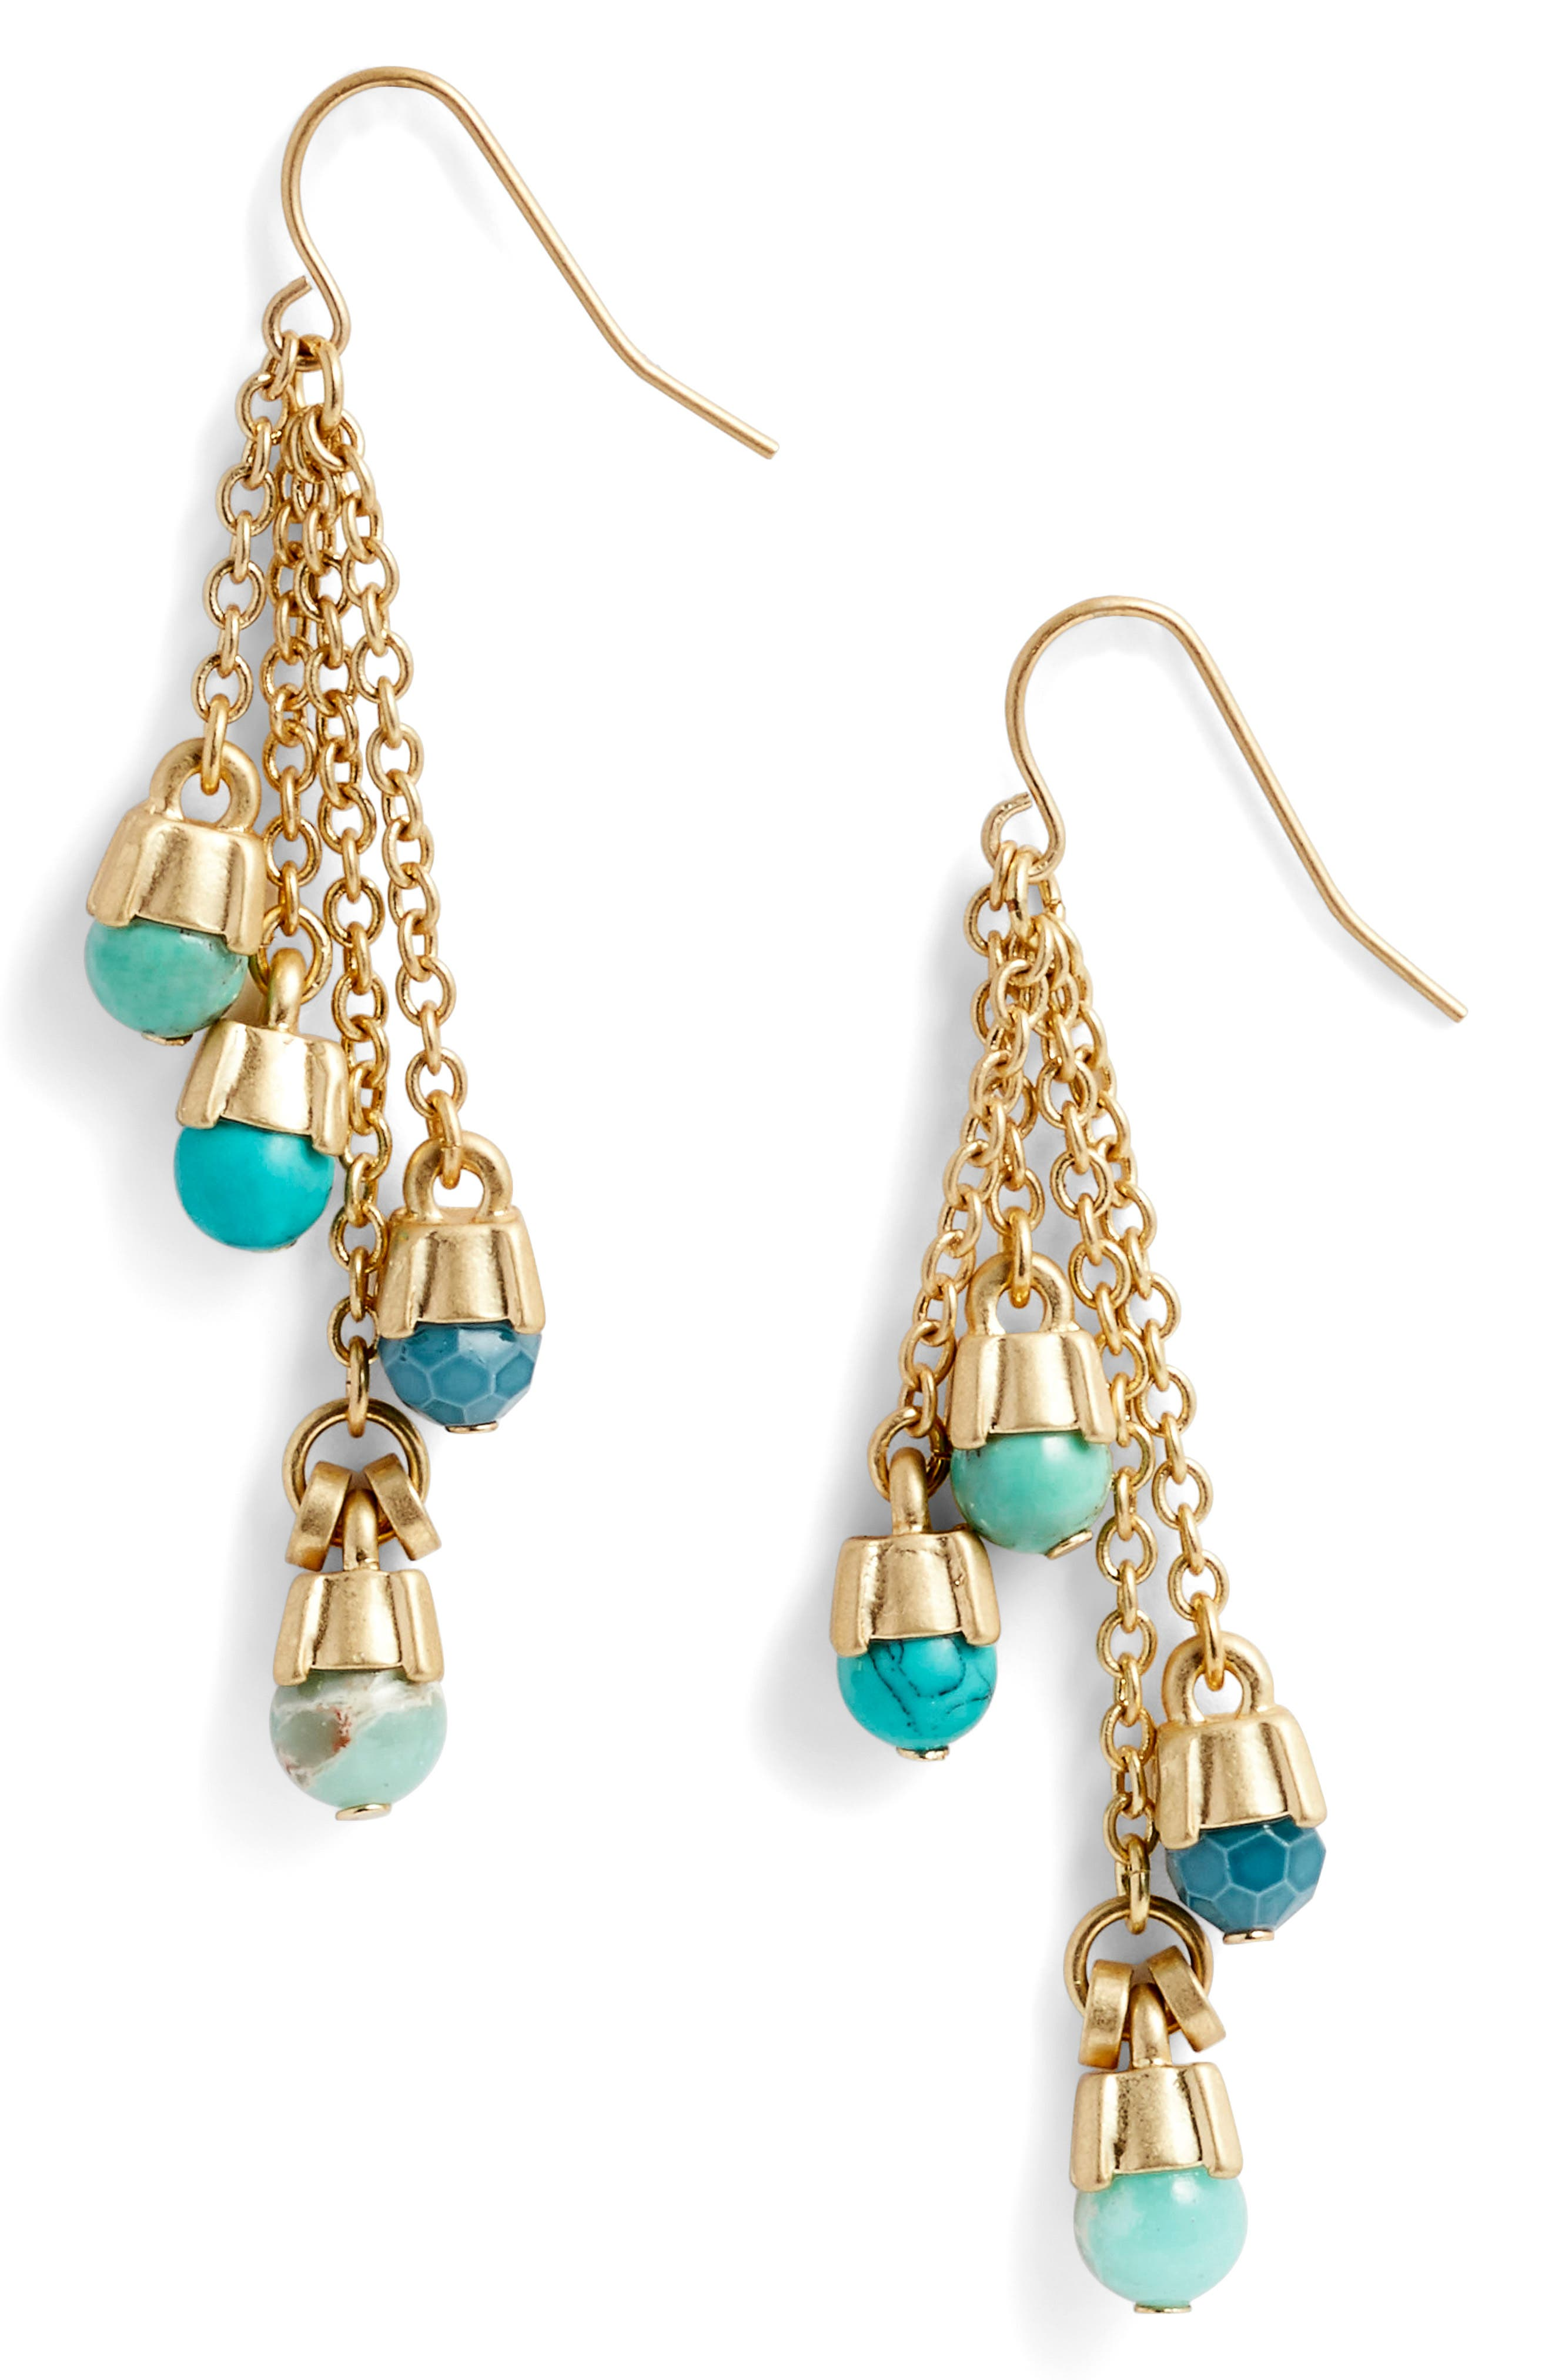 Four-Stone Linear Drop Earrings,                             Main thumbnail 1, color,                             Turquoise- Gold